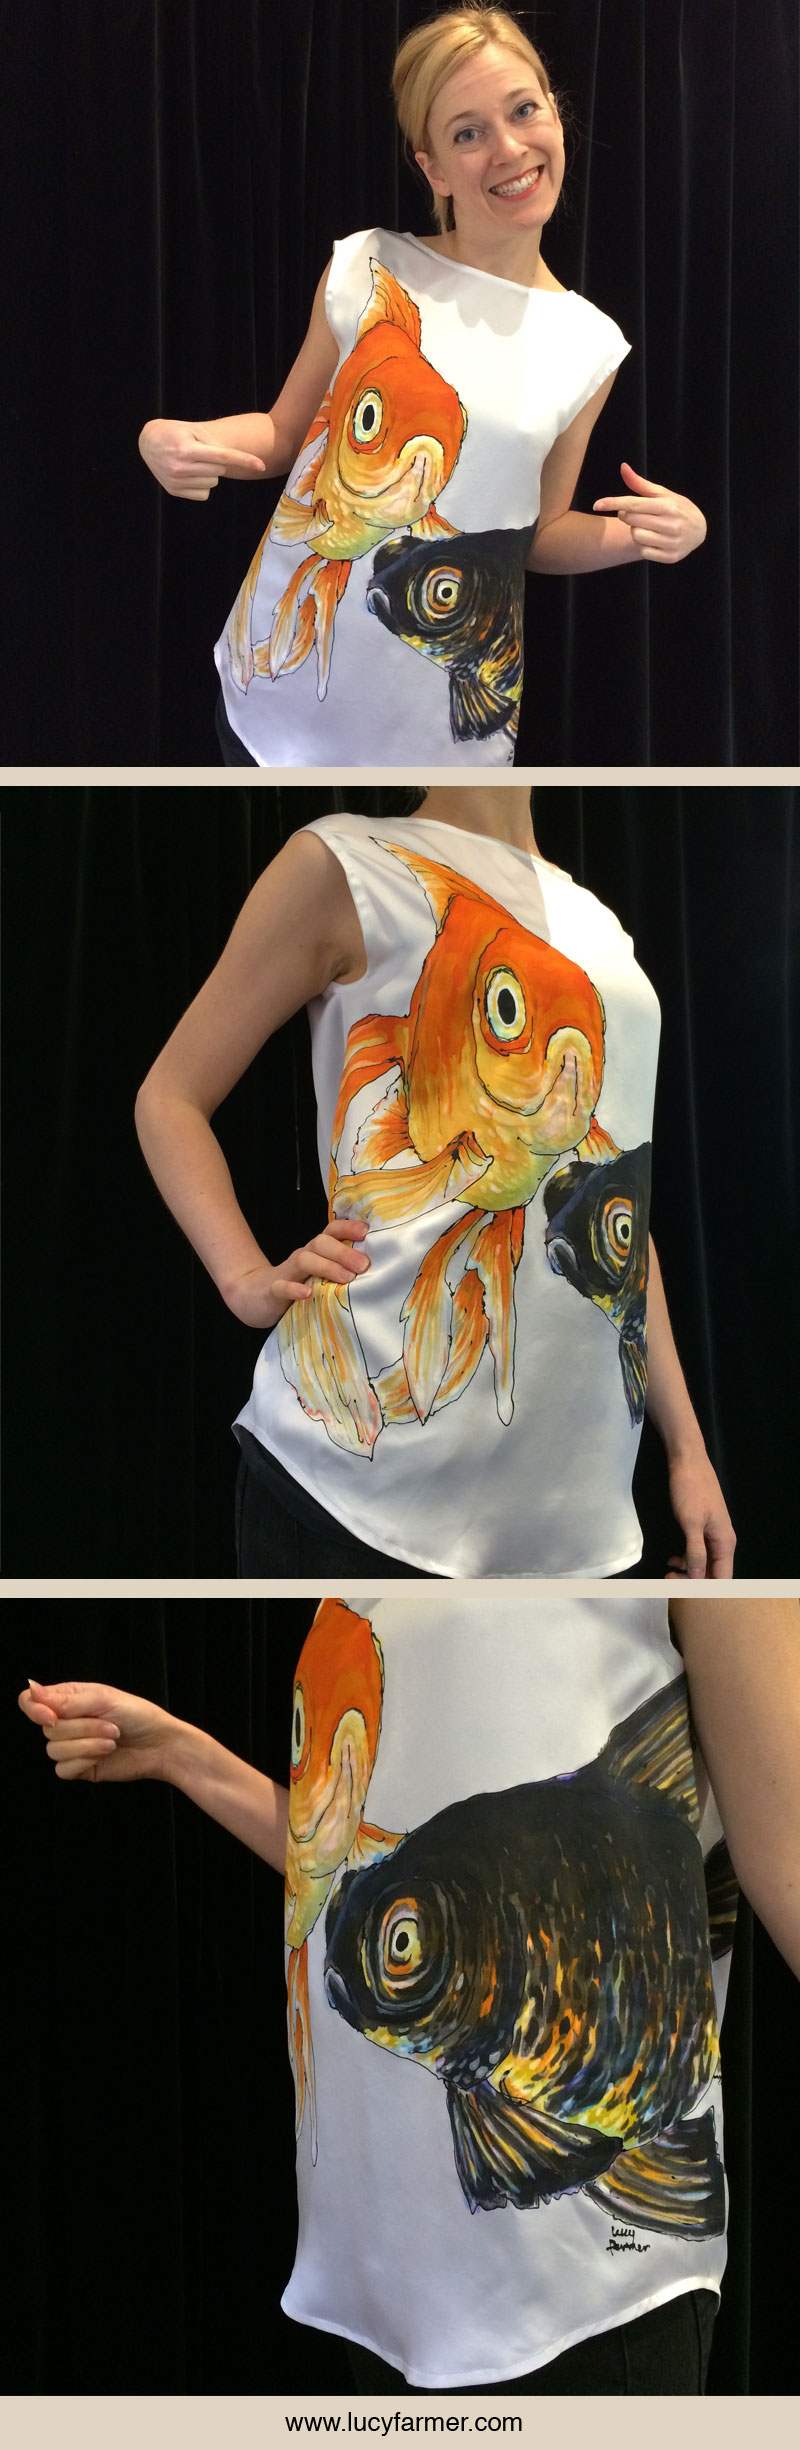 One piece silk top hand painted with gold fish by Lucy Farmer.